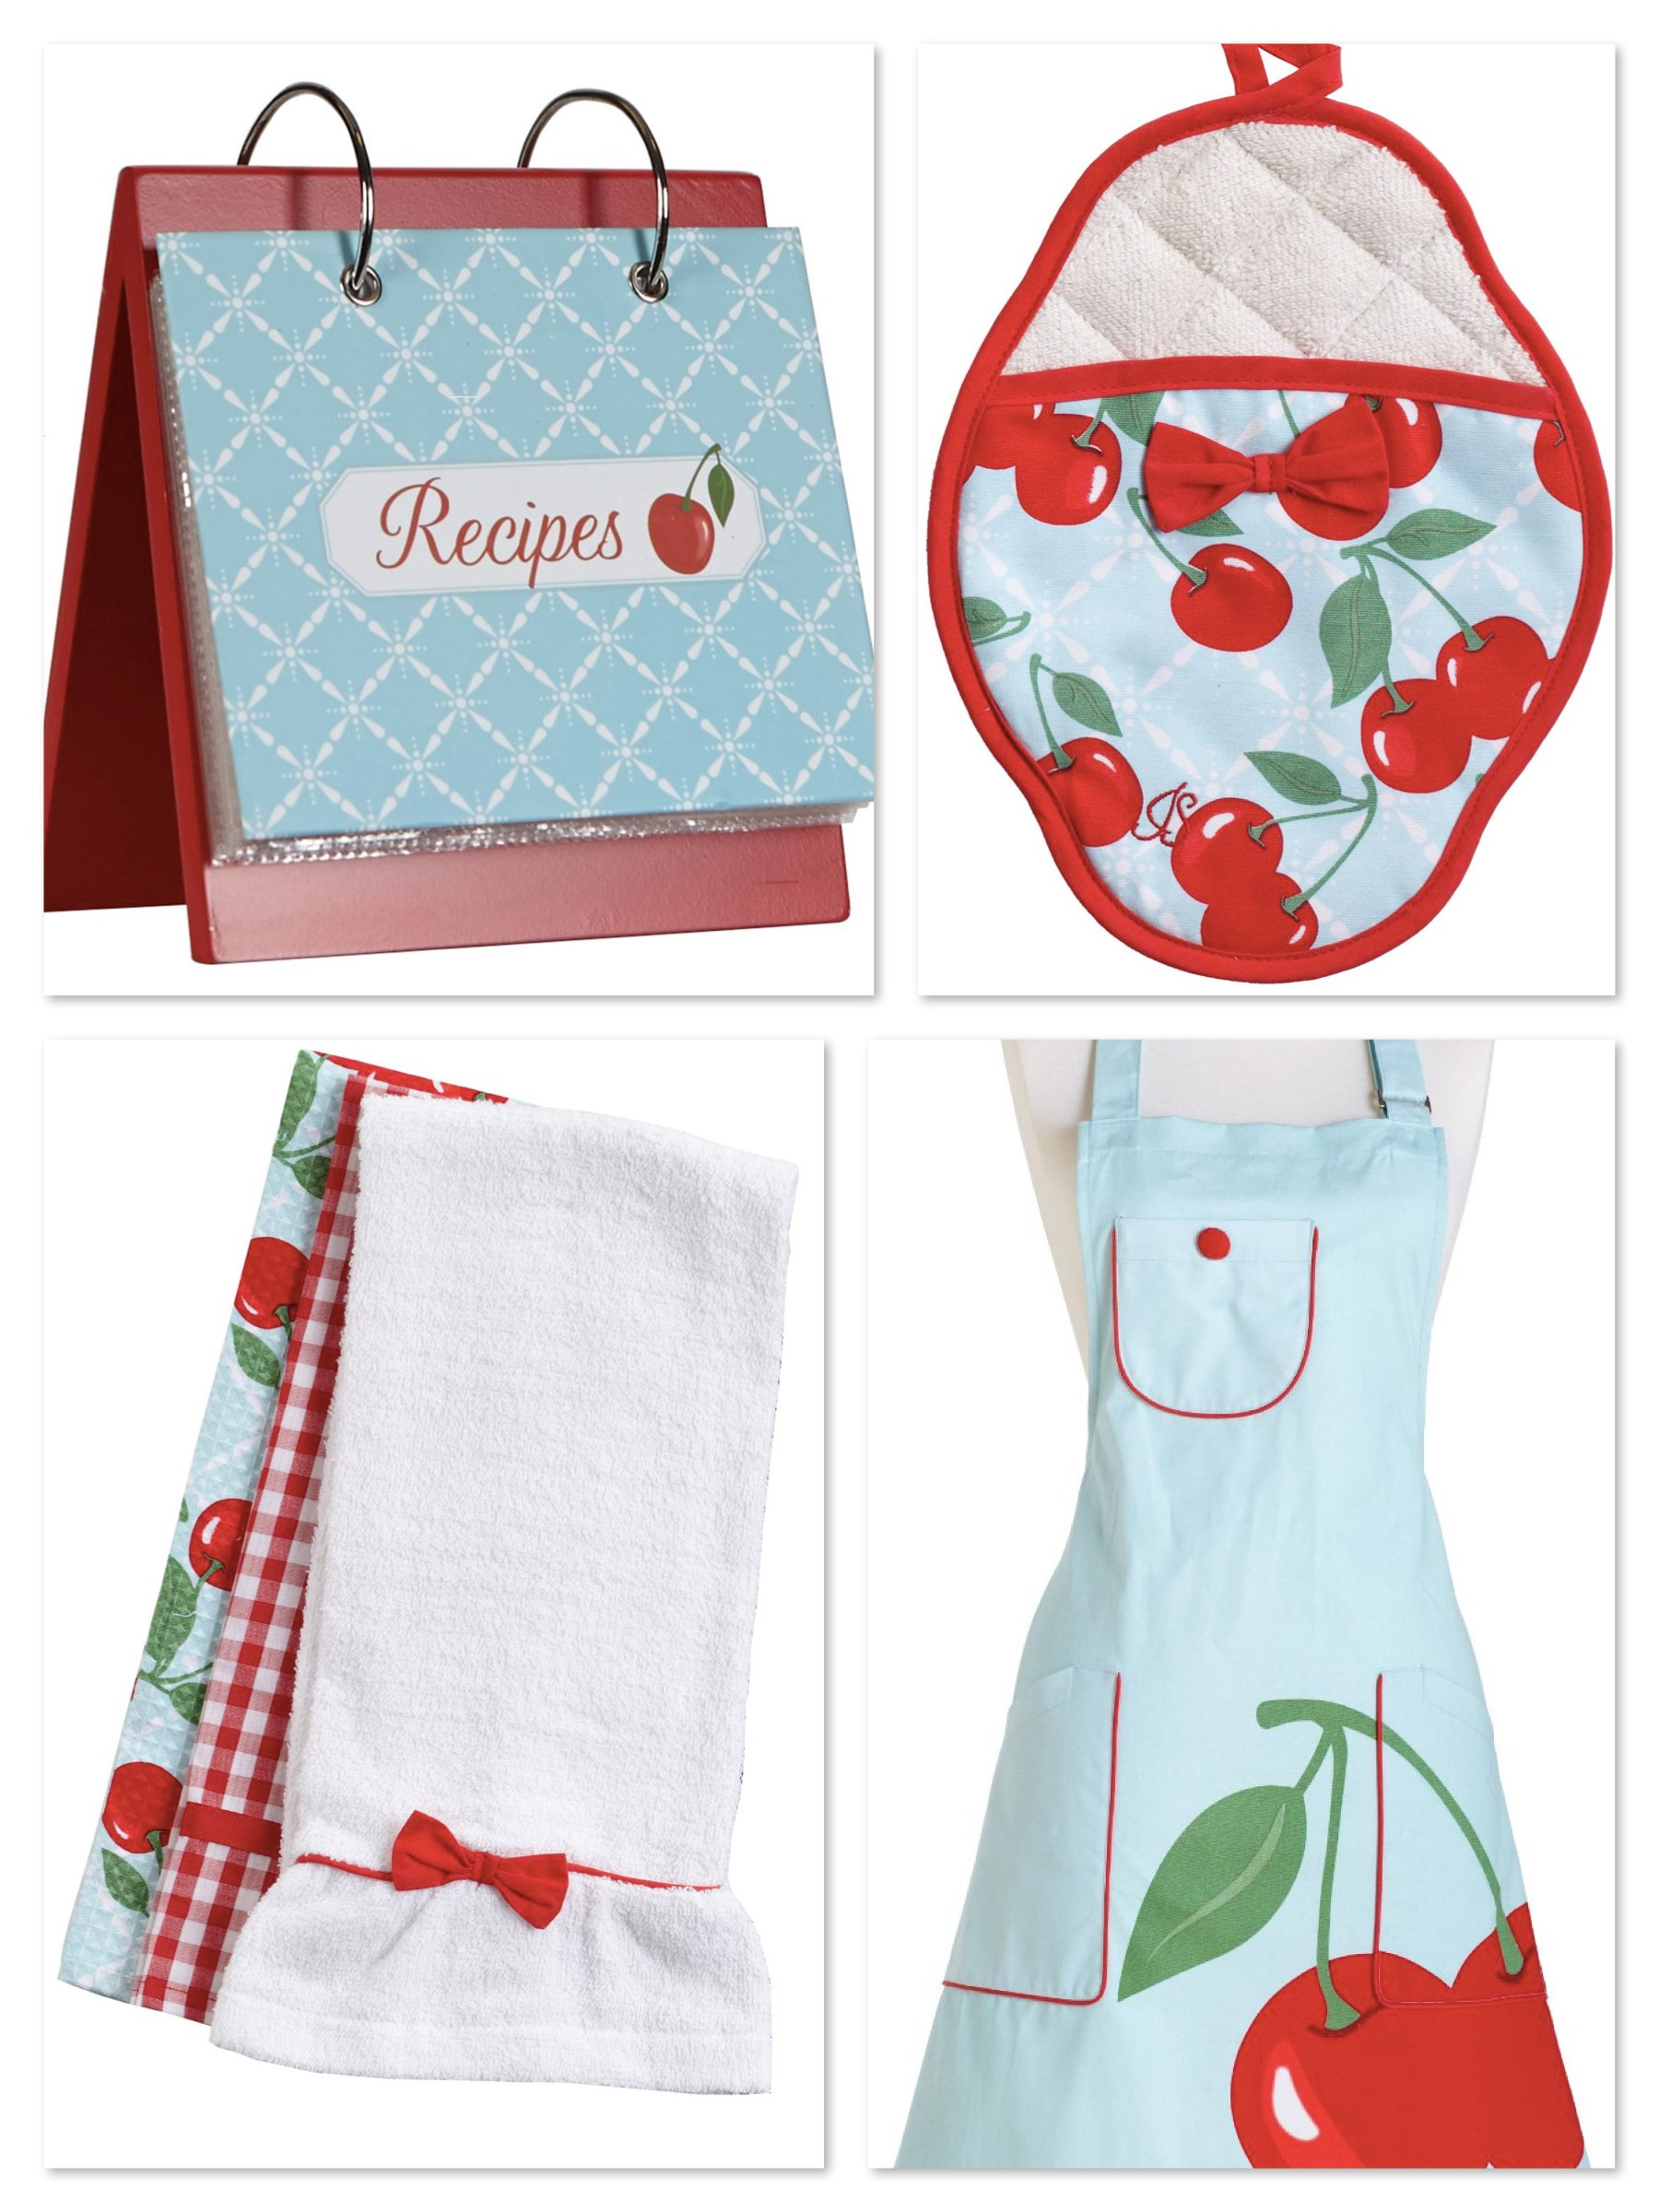 Jessie Steele Kitchen Cherry Pattern Aprons & Matching Kitchen Stuff